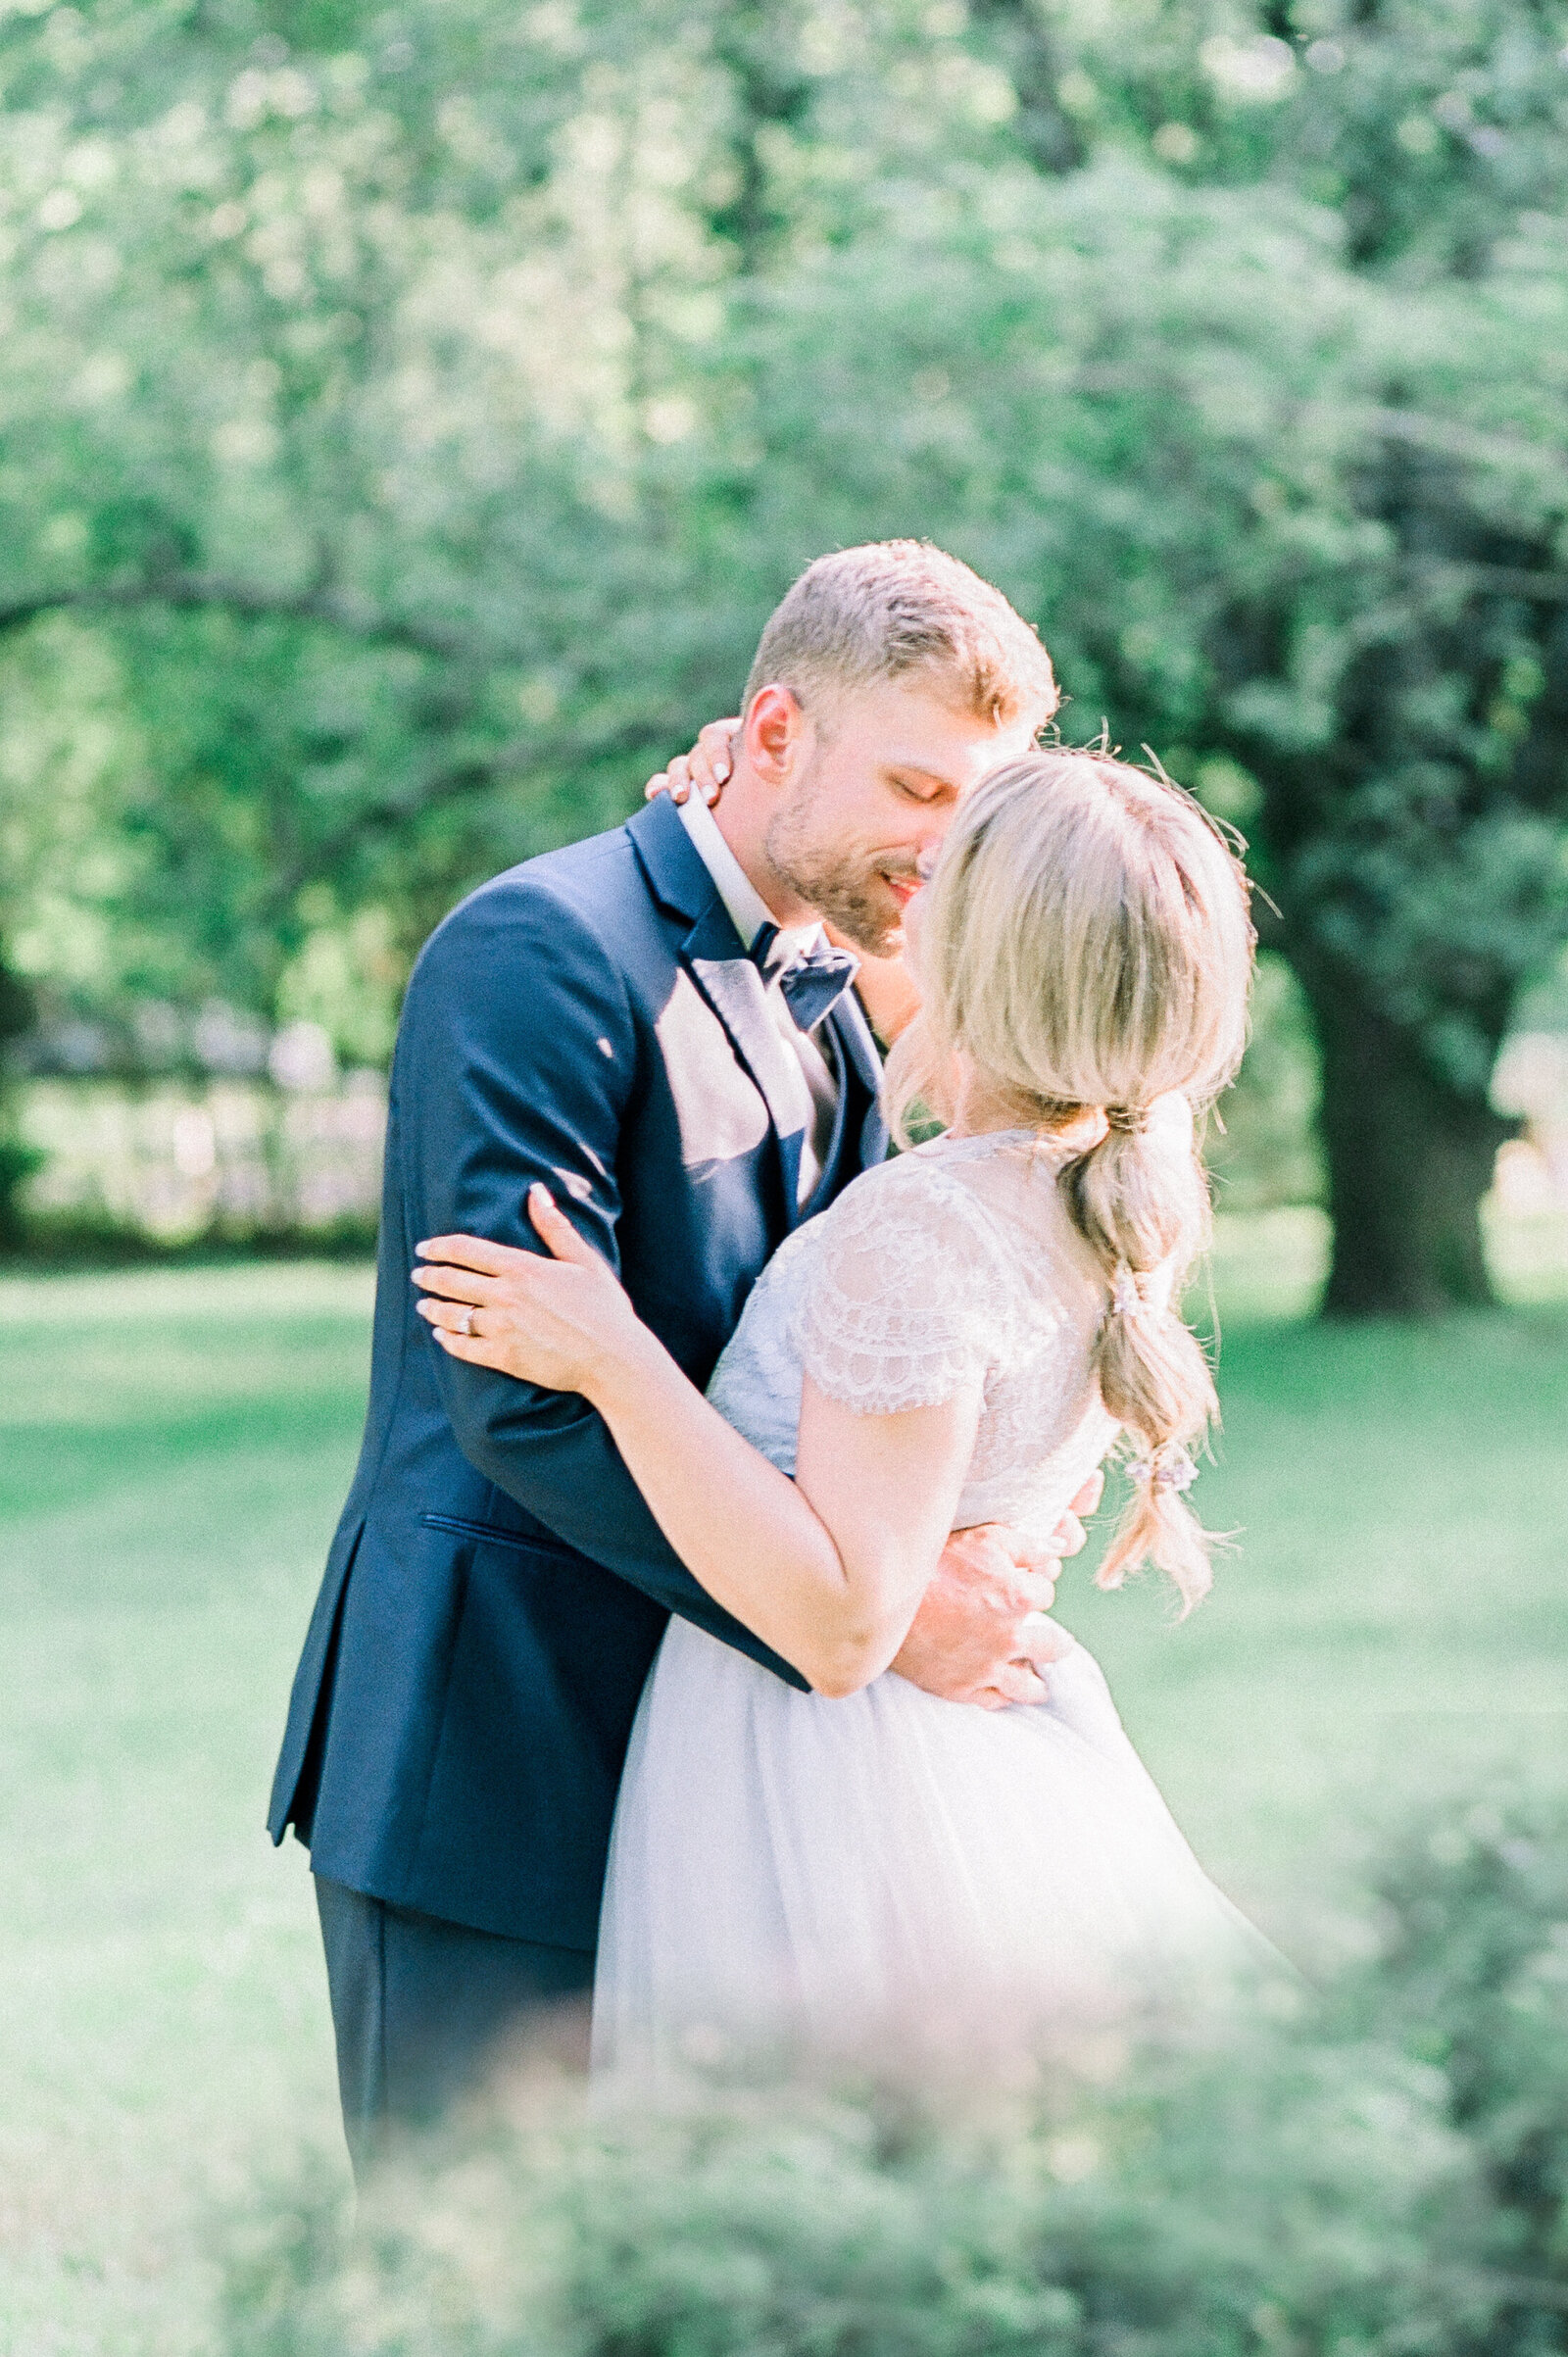 light and airy wedding photographer in michigan